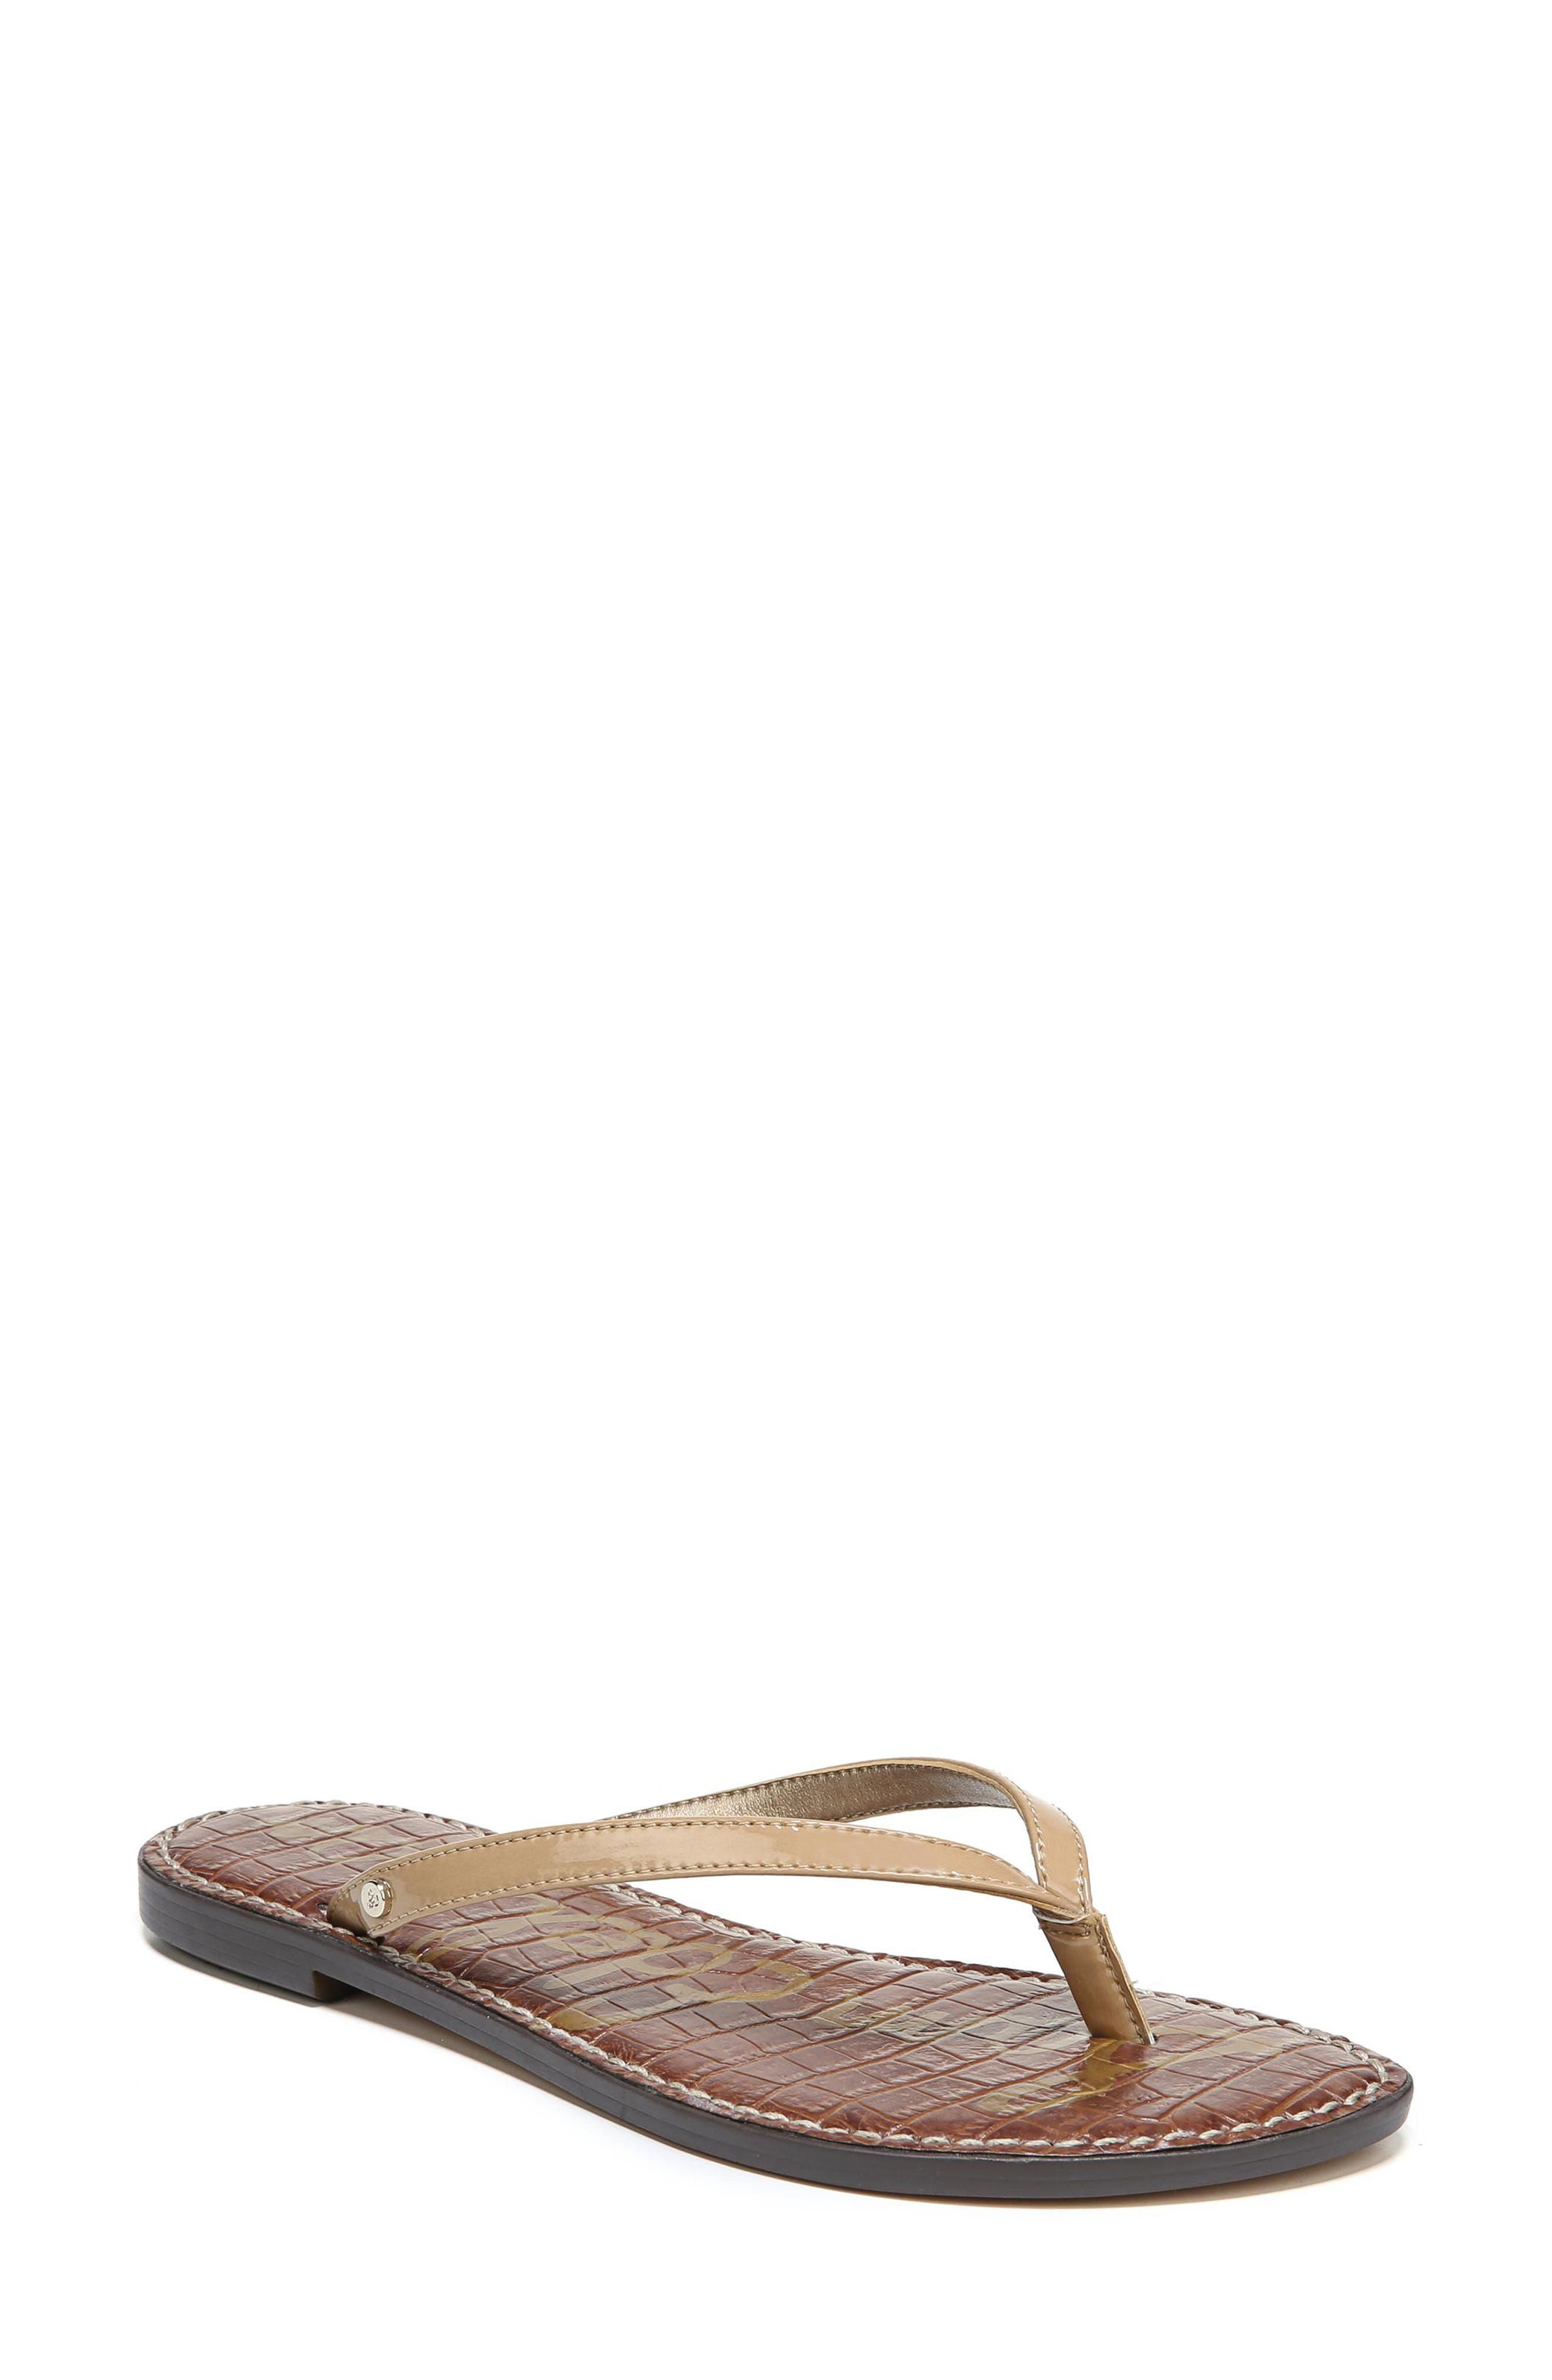 Gracie Sandal,                         Main,                         color, ALMOND PATENT LEATHER